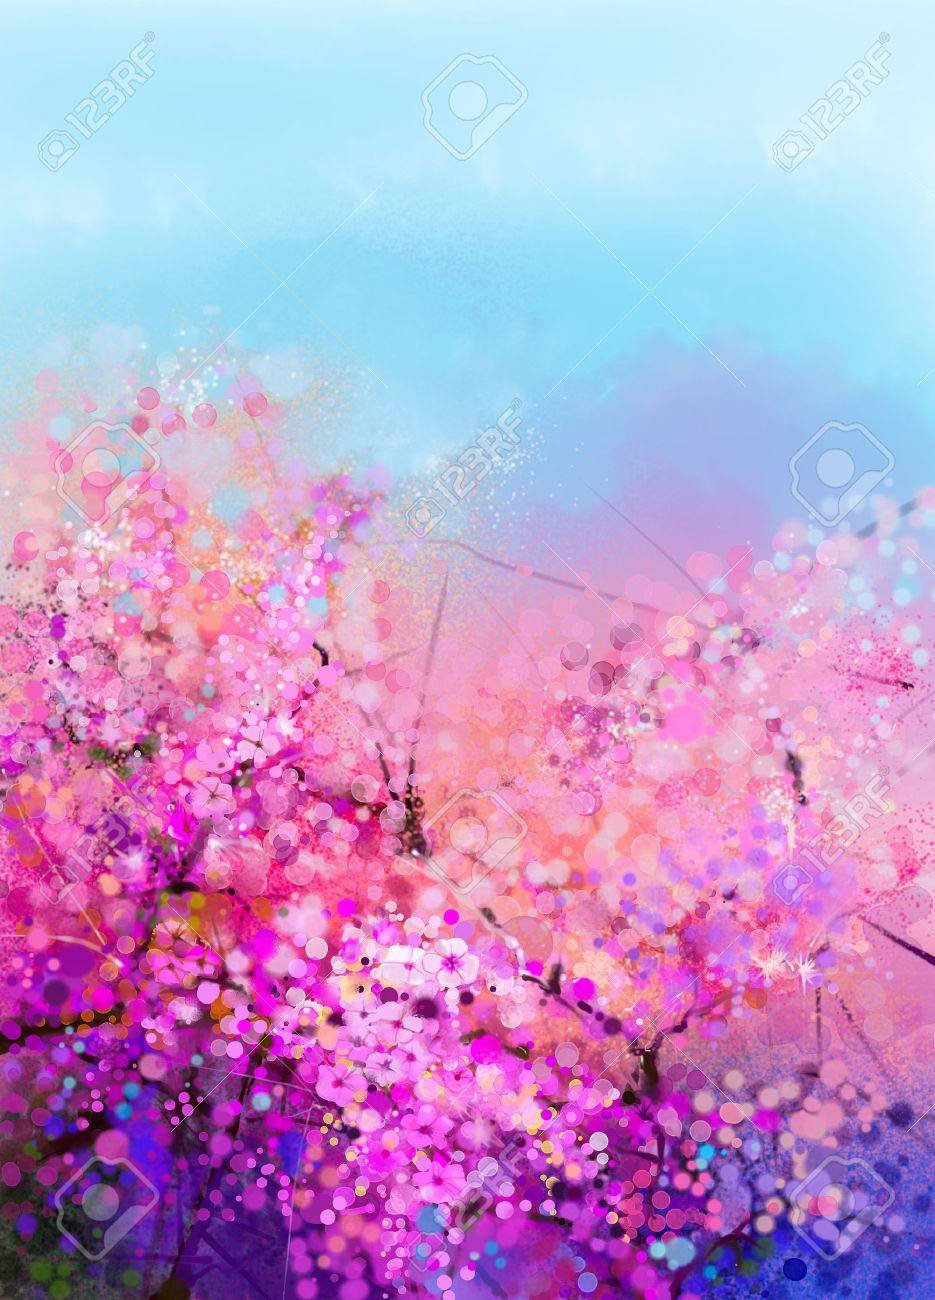 Watercolor painting cherry blossoms japanese cherry sakura 55157487 watercolor painting cherry blossoms japanese cherry sakura floral with blue sky pink flowers in softg mightylinksfo